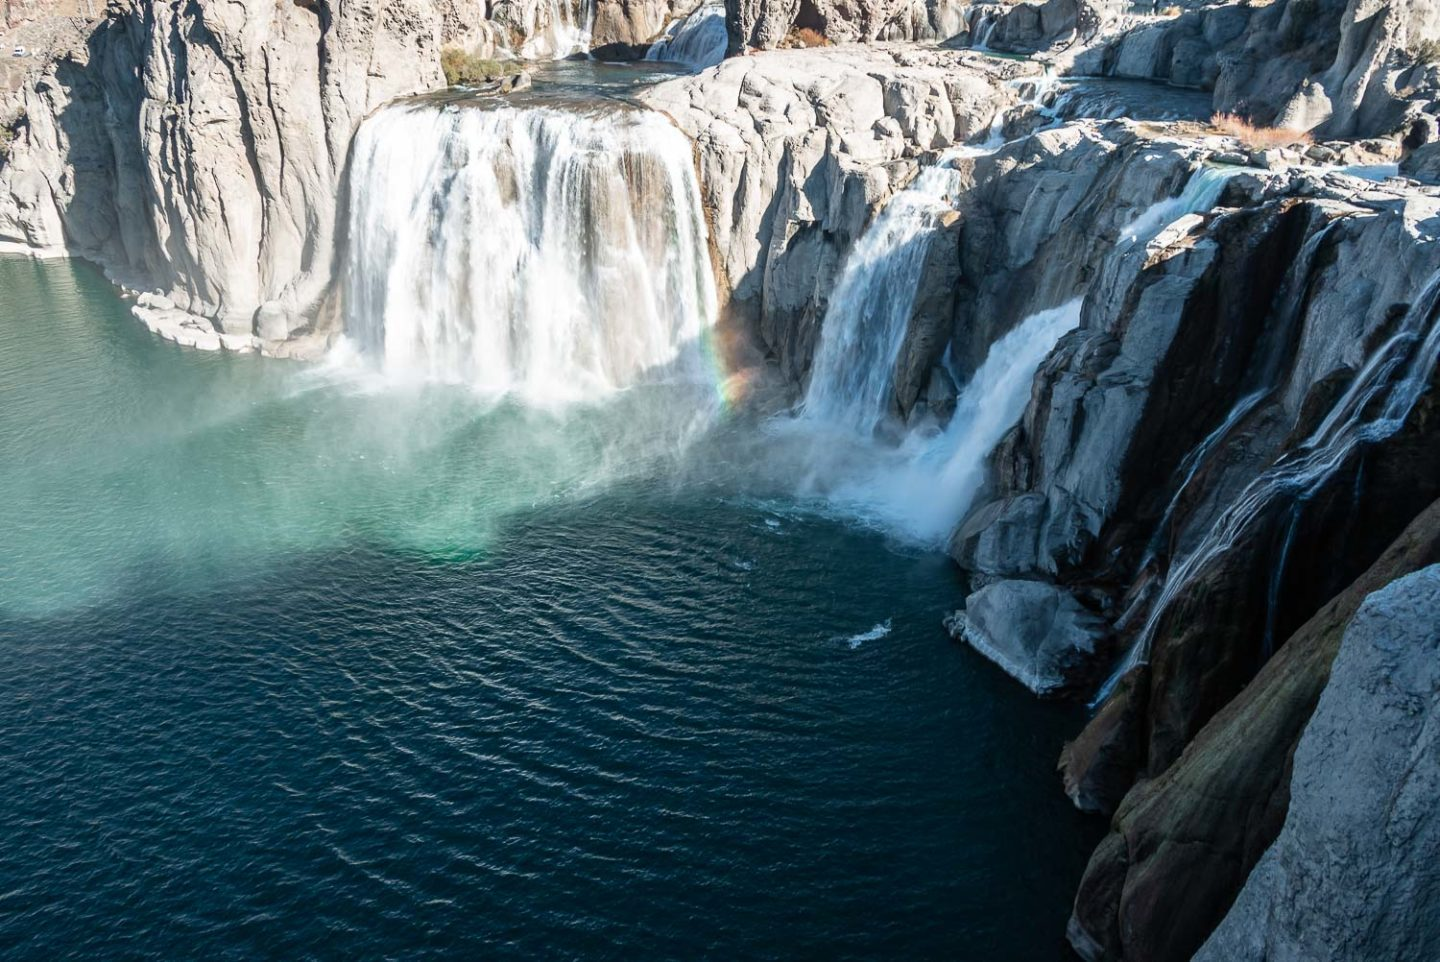 Visit Shoshone Falls - Roads and Destinations, roadsanddestinations.com